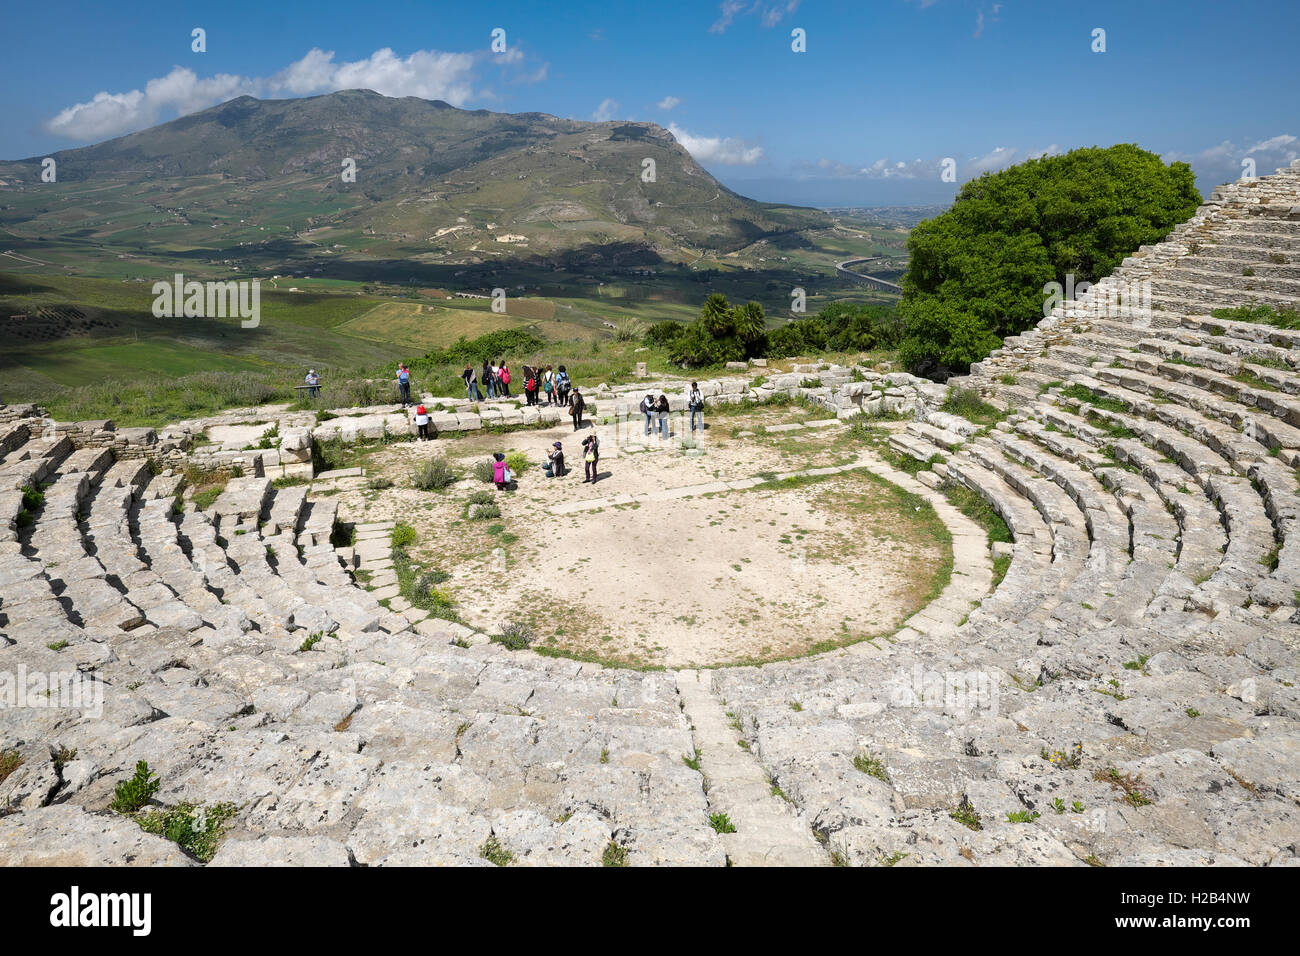 Amphitheater, ancient theater of Segesta, Province of Trapani, Sicily, Italy - Stock Image